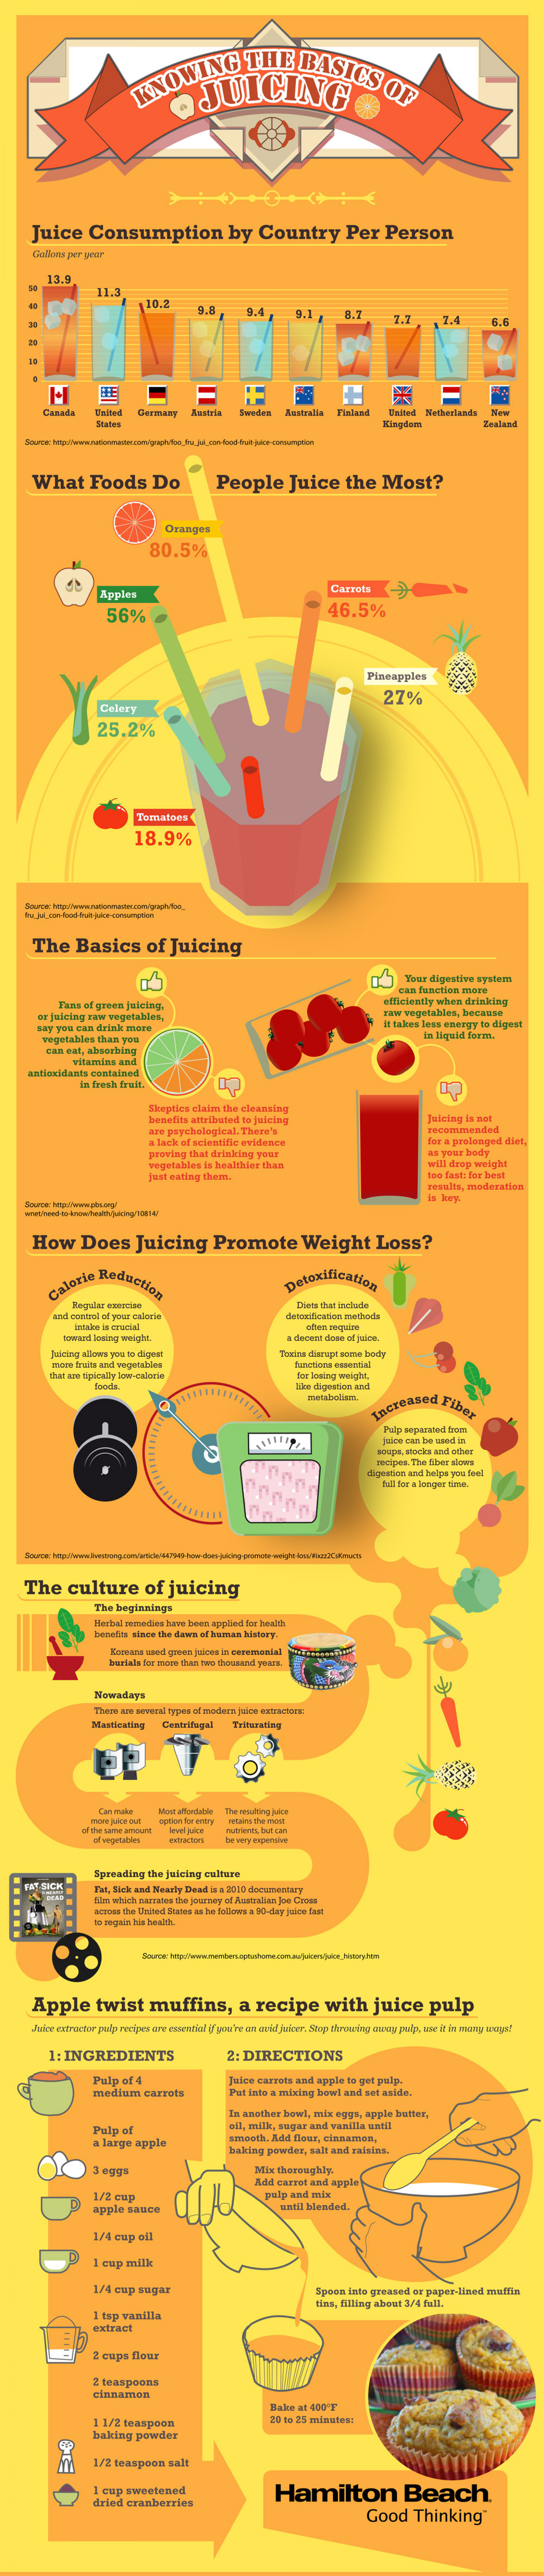 The Basics of Juicing Infographic